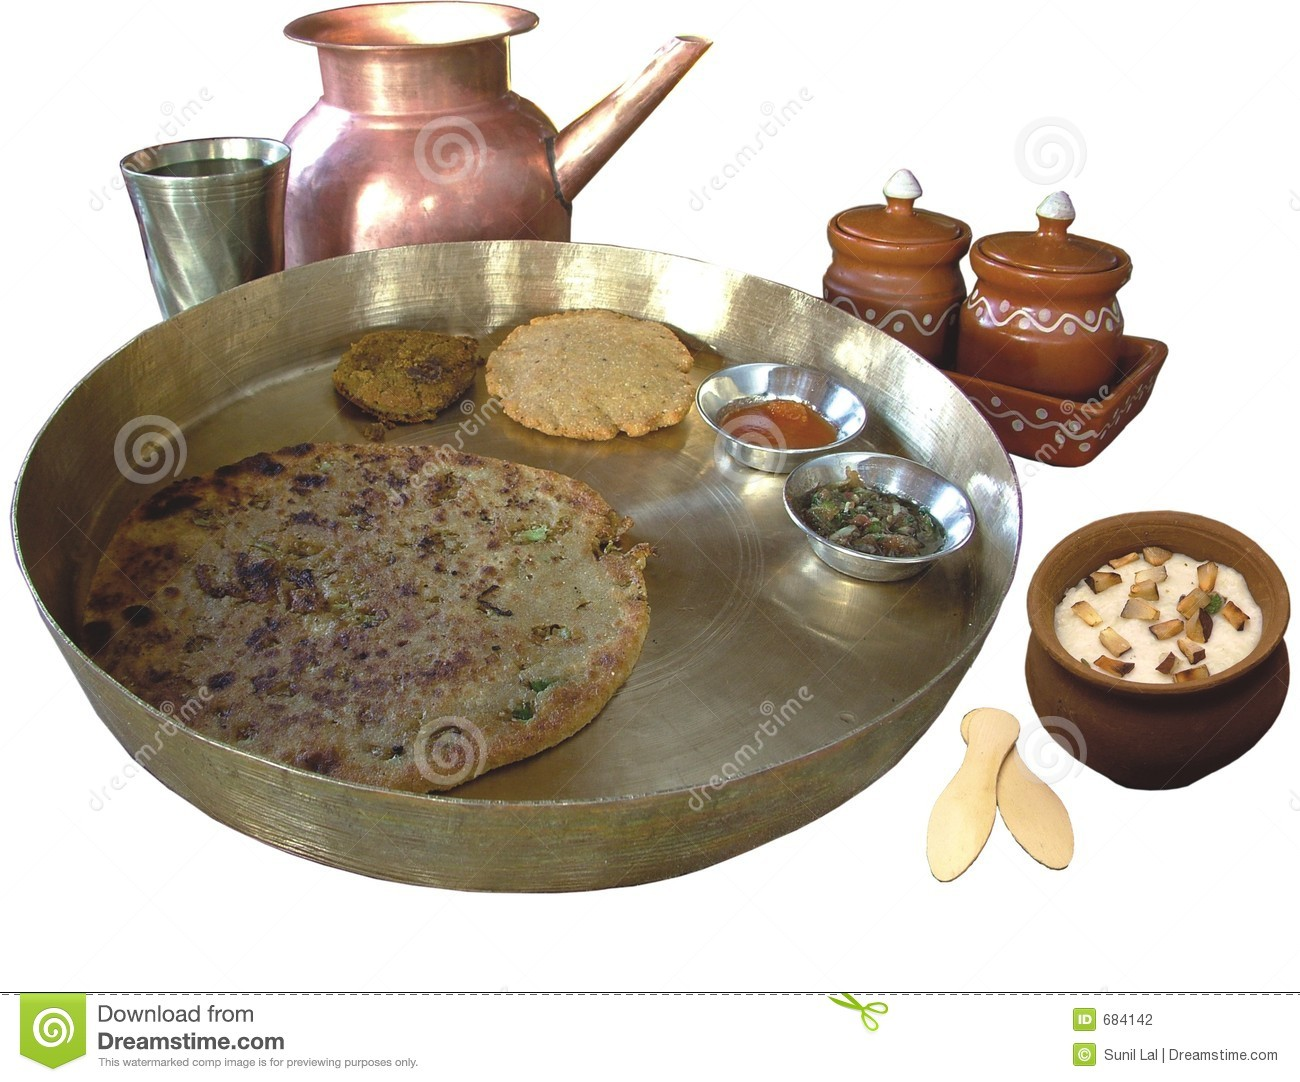 Nourriture traditionnelle indienne